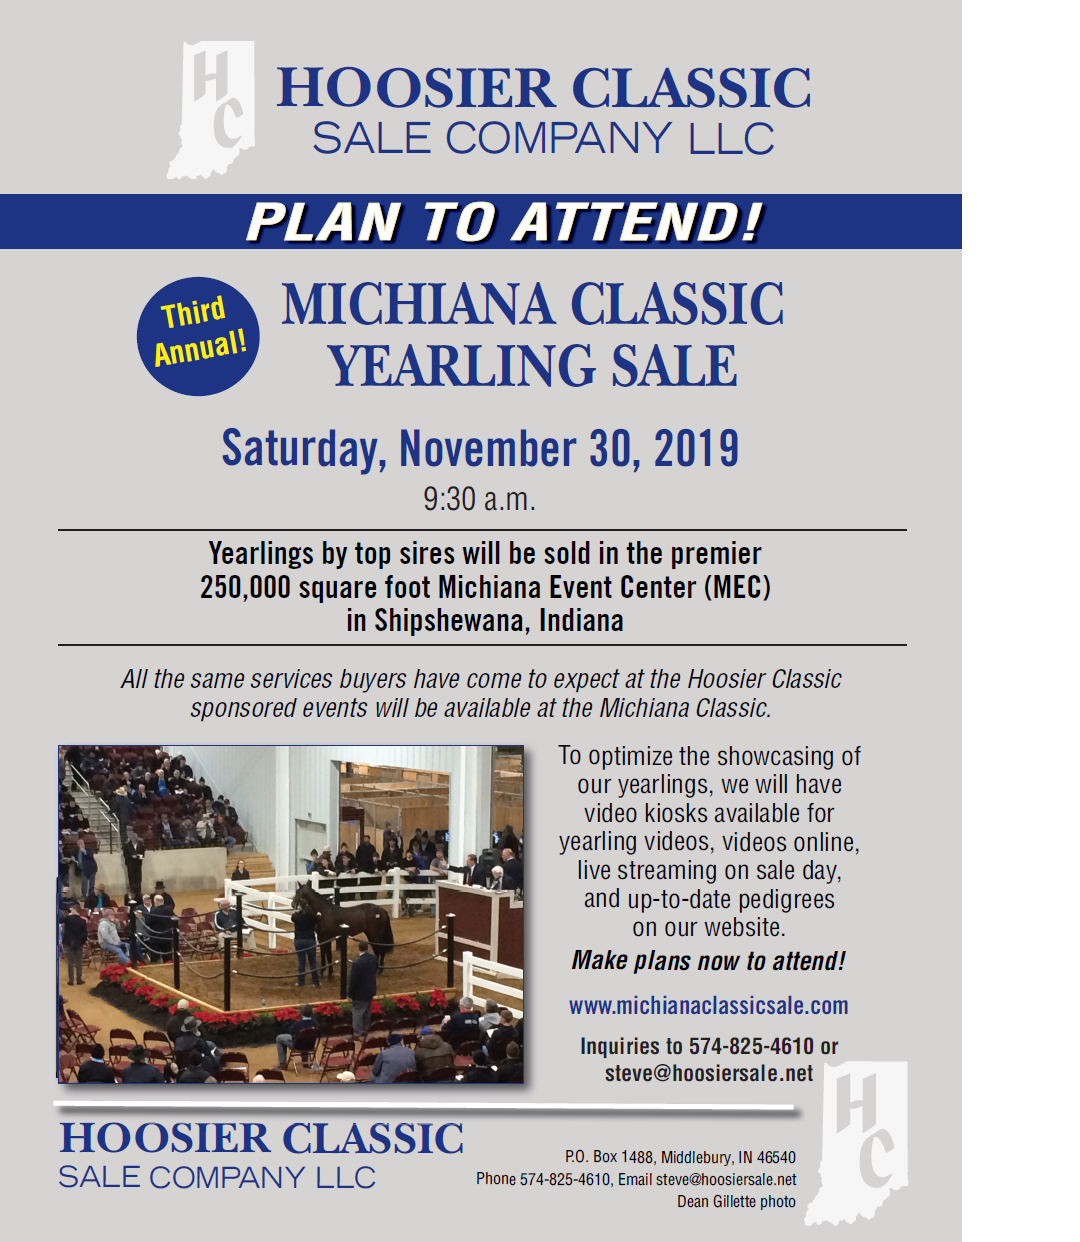 Michiana_Classic_Yearling_Sale_091019